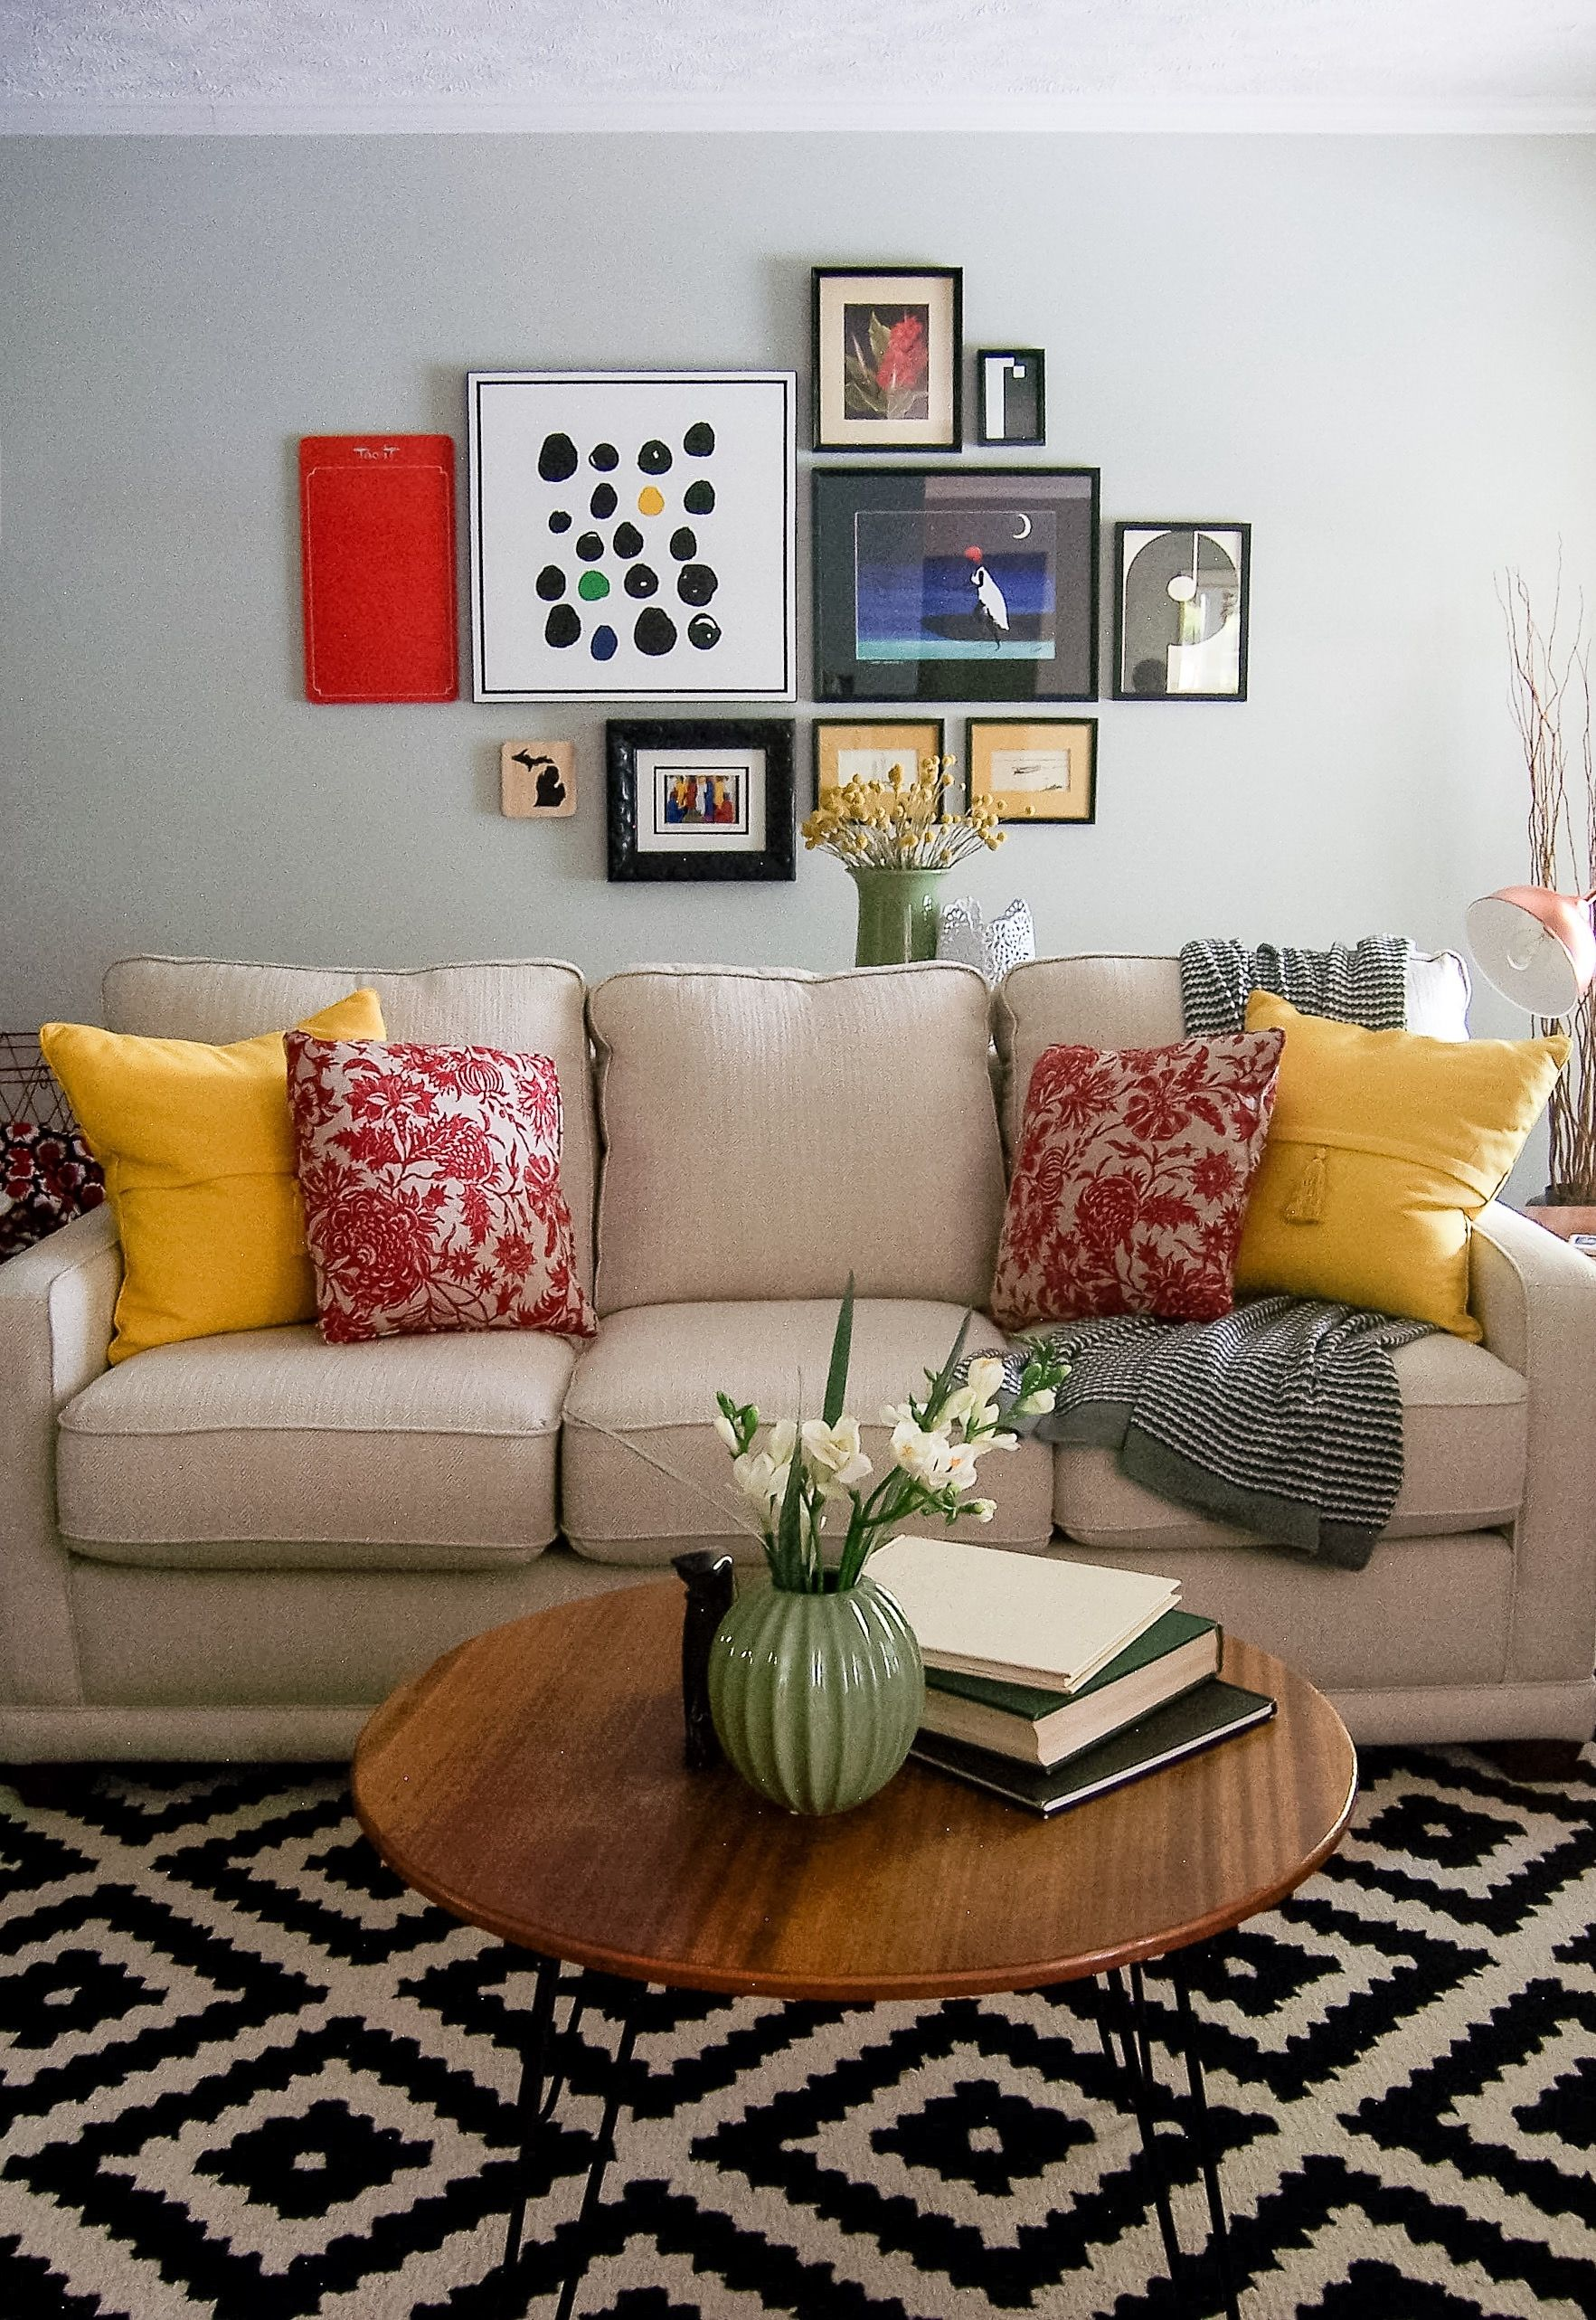 mid century modern inspired colorful and eclectic living